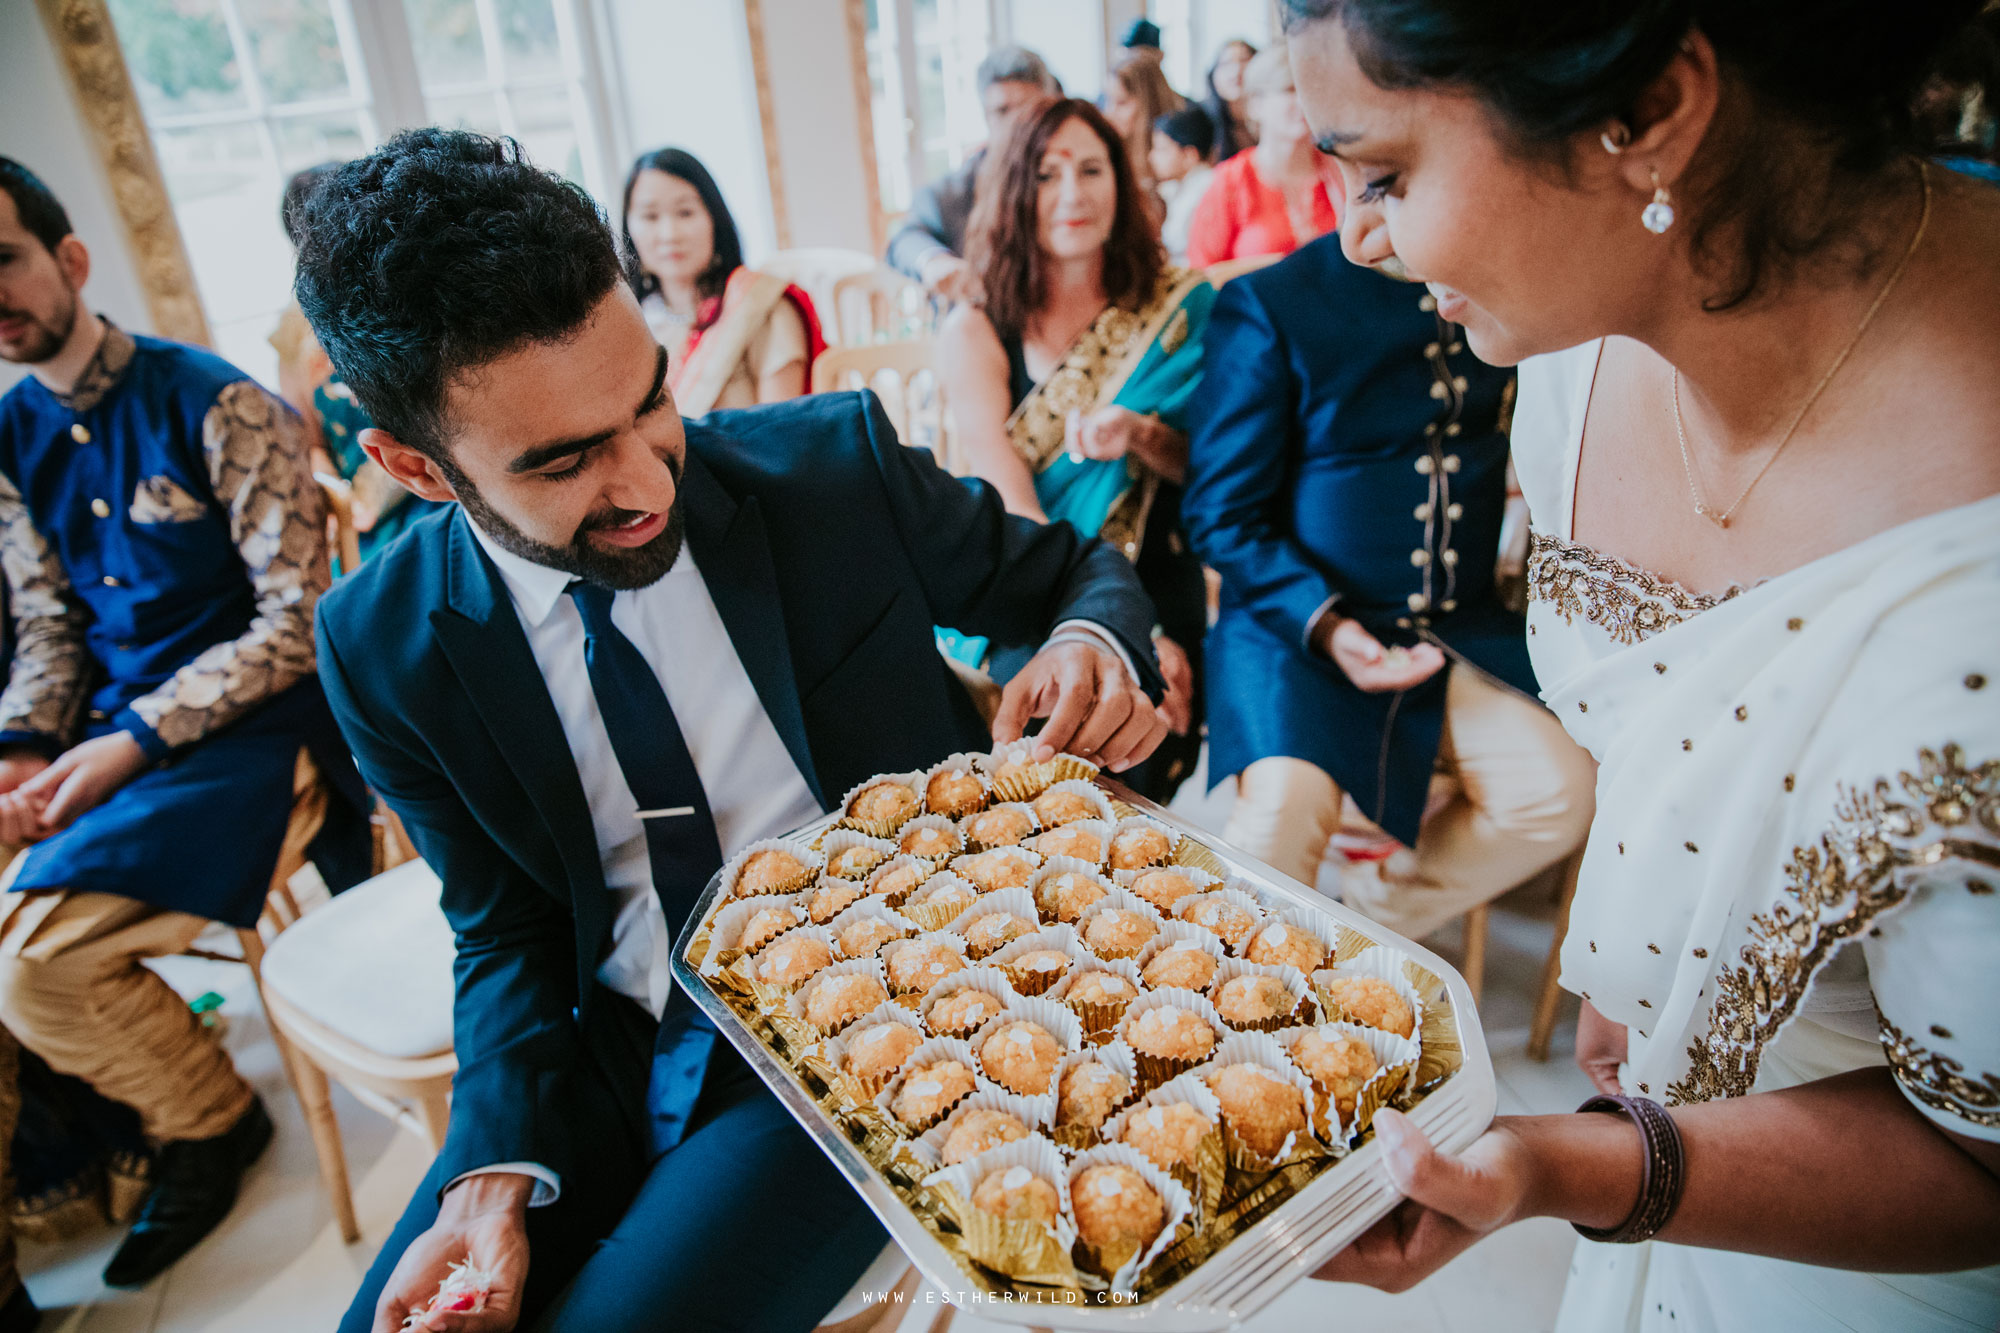 Northbrook_Park_Farnham_Surrey_London_Wedding_Hindu_Fusion_Esther_Wild_Photographer_IMG_4416.jpg